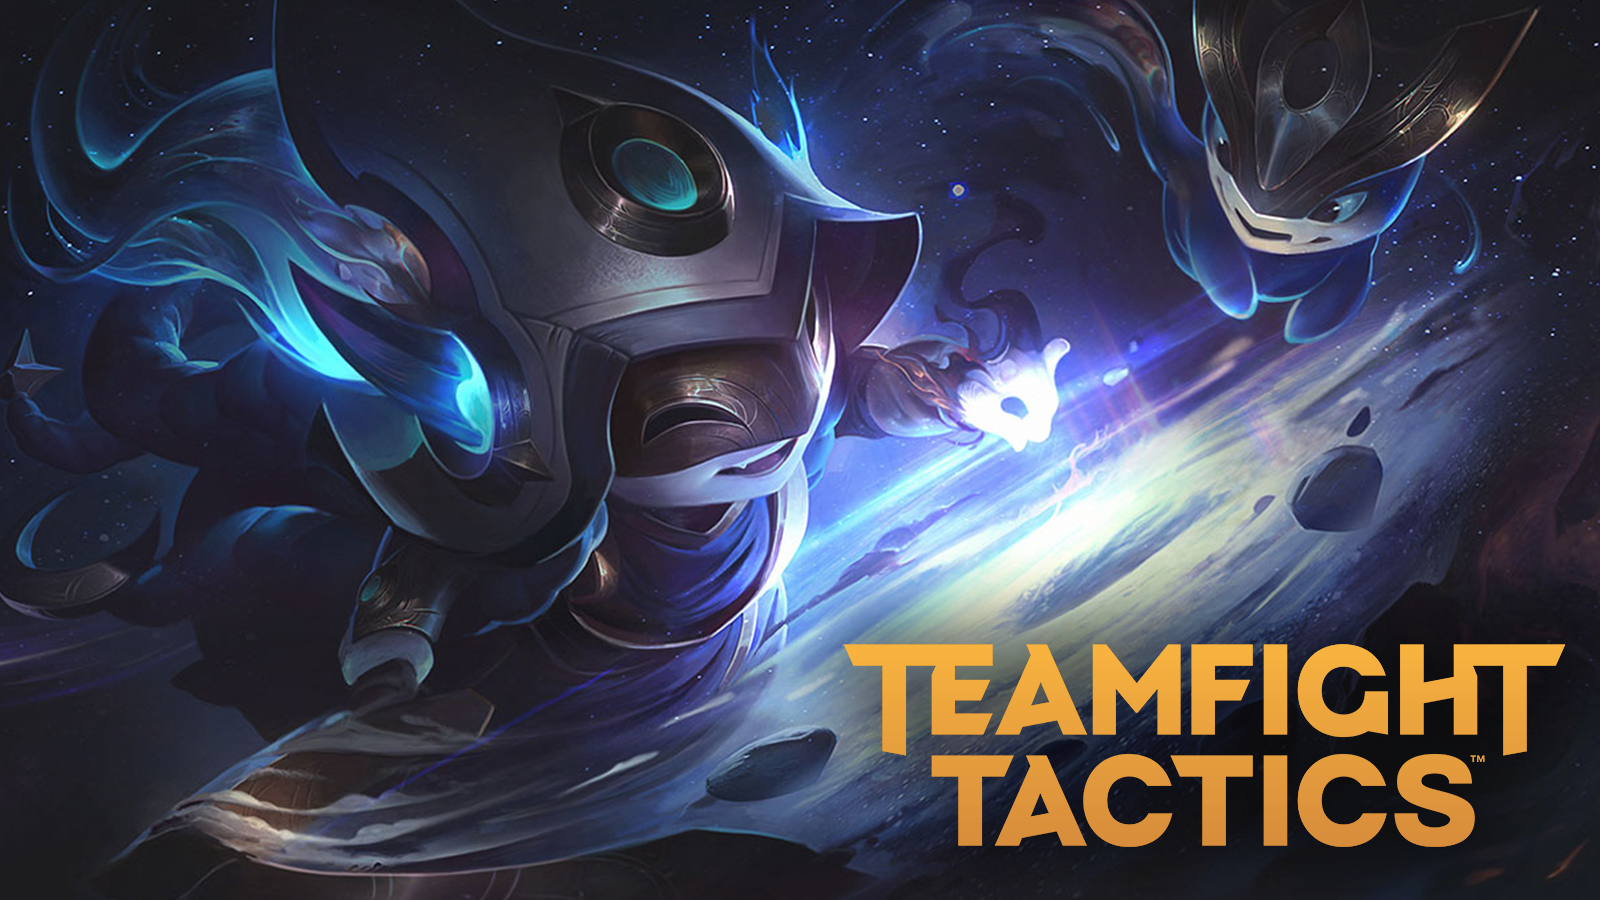 Lulu cosmic version appearing in TFT patch 10.24 feature image.